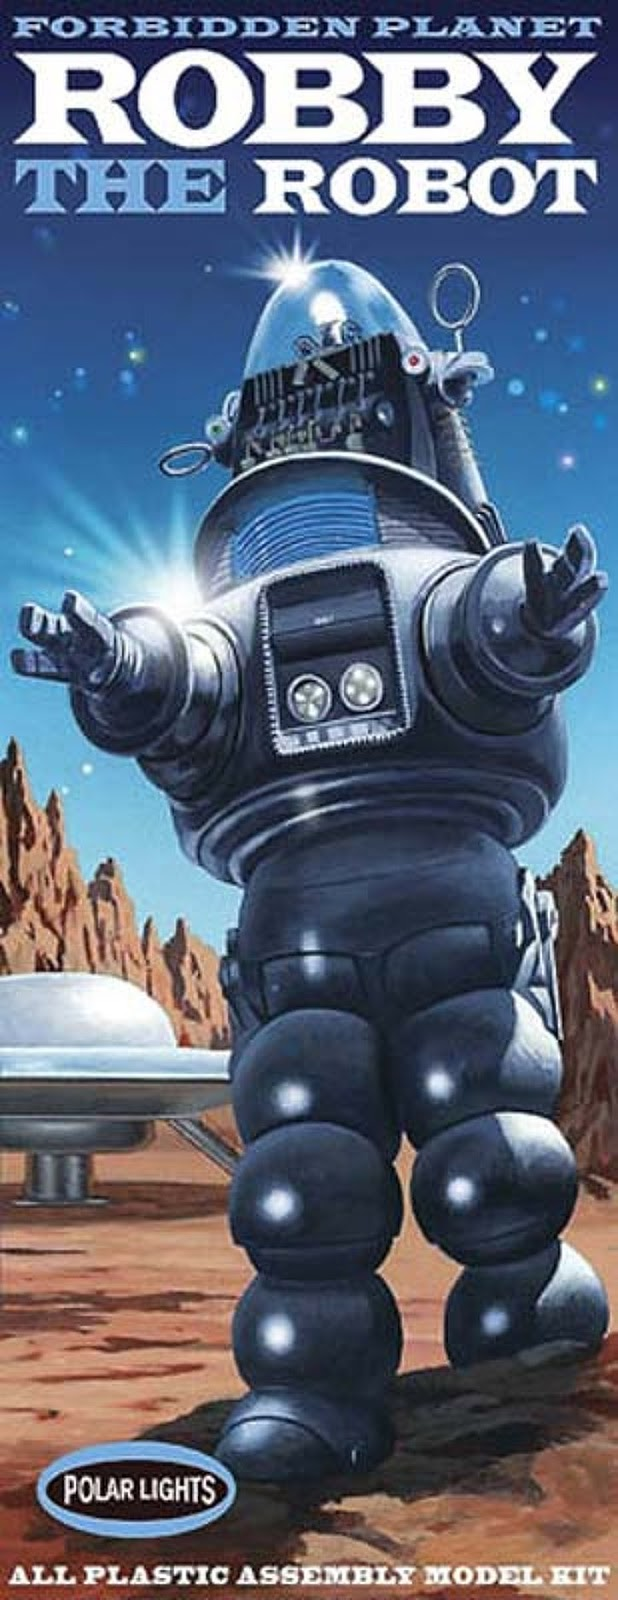 Forbidden Planet Robot | www.imgkid.com - The Image Kid ...